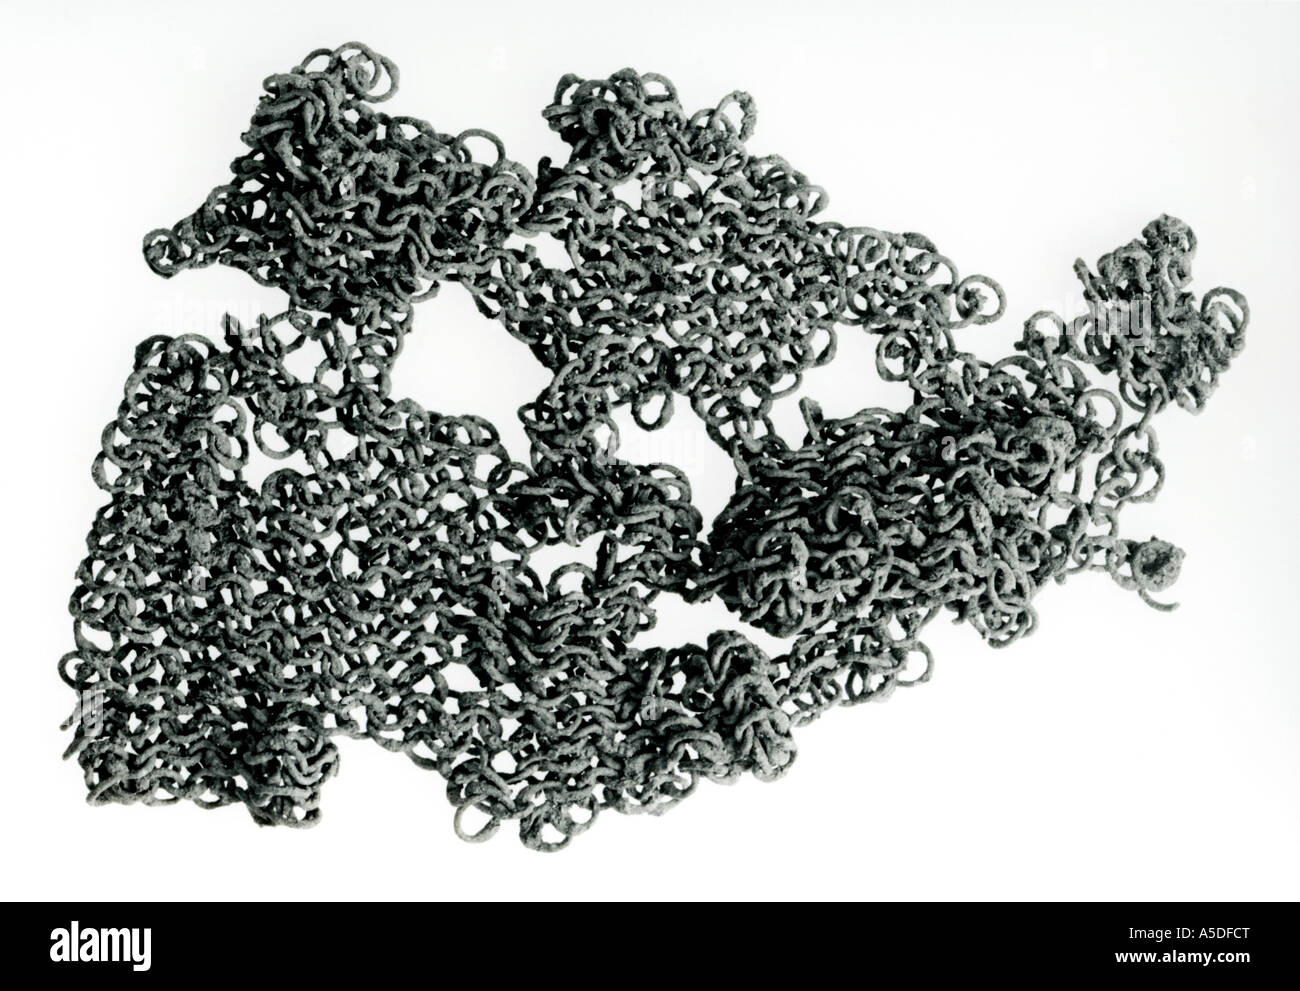 Chain mail - Stock Image